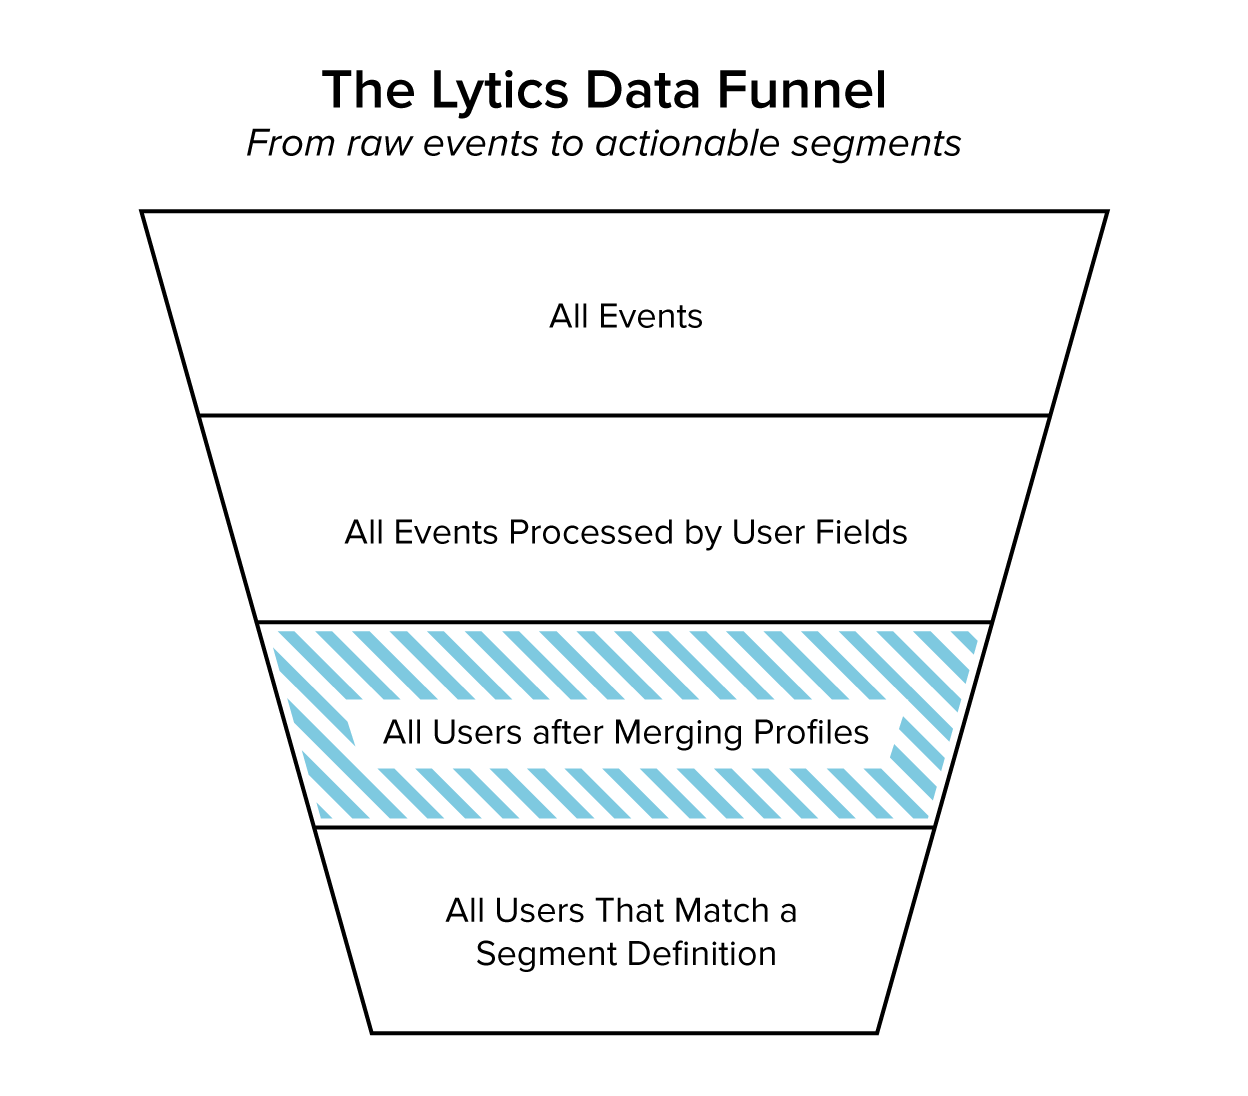 User Profiles is the third stage of the Lytics data funnel